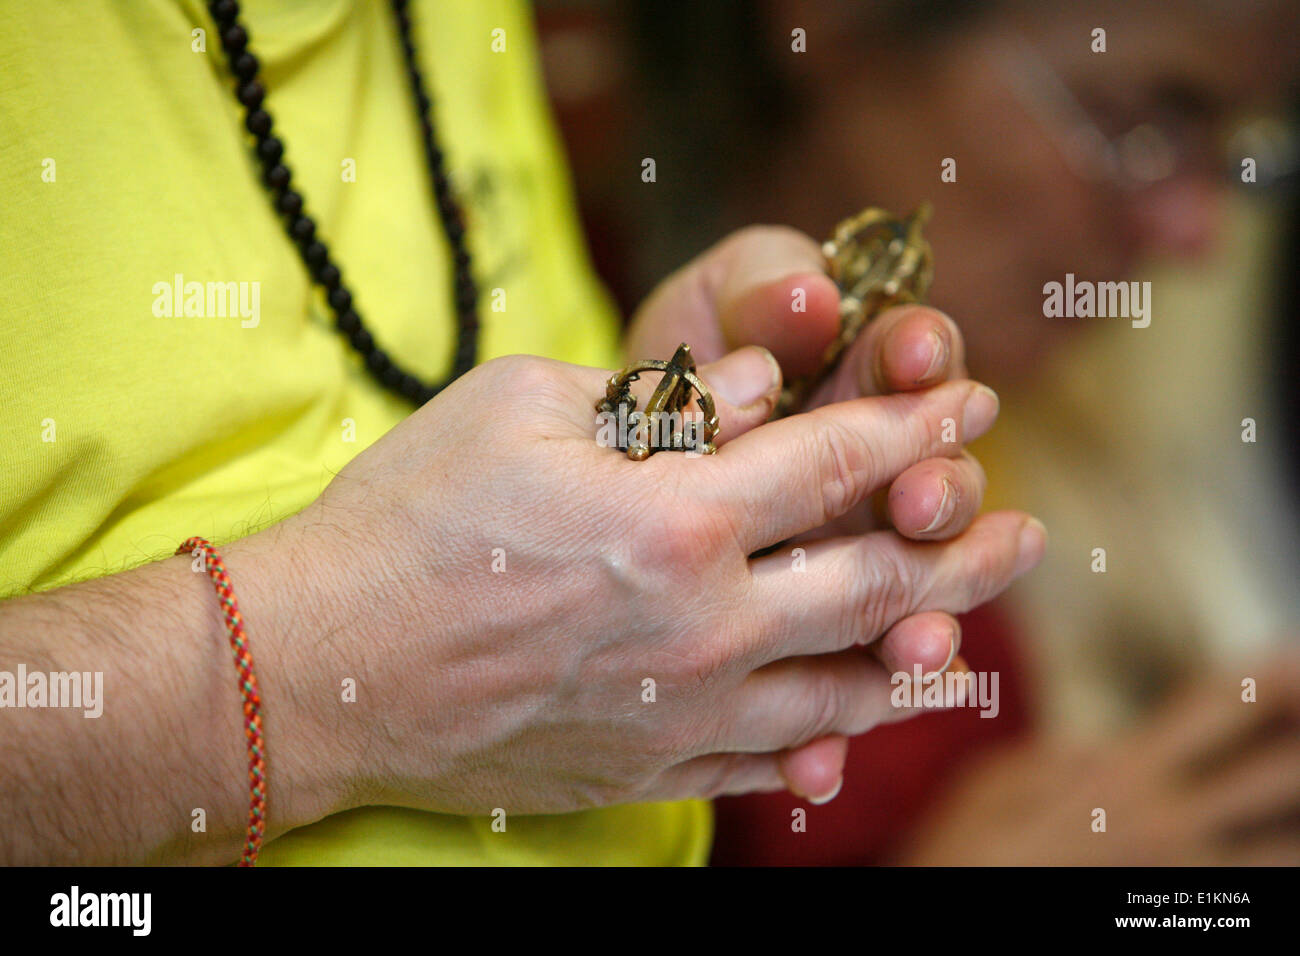 Buddhism student at Vajradhara-Ling temple - Stock Image